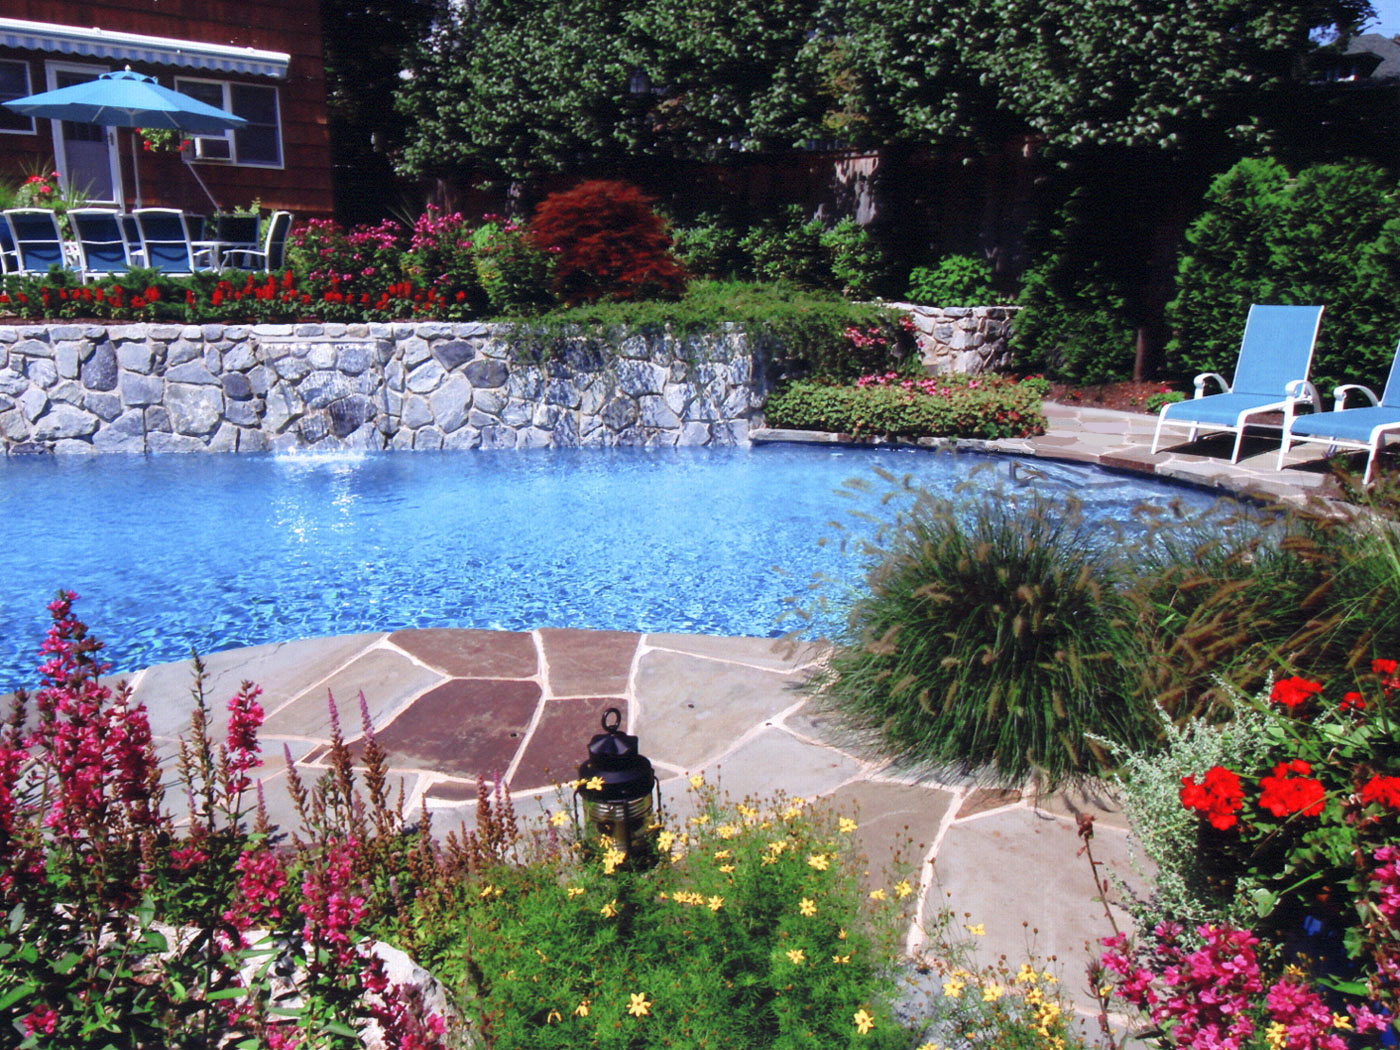 Bluestone walkway with stone retaining walls waterfall and pool in Dix Hills